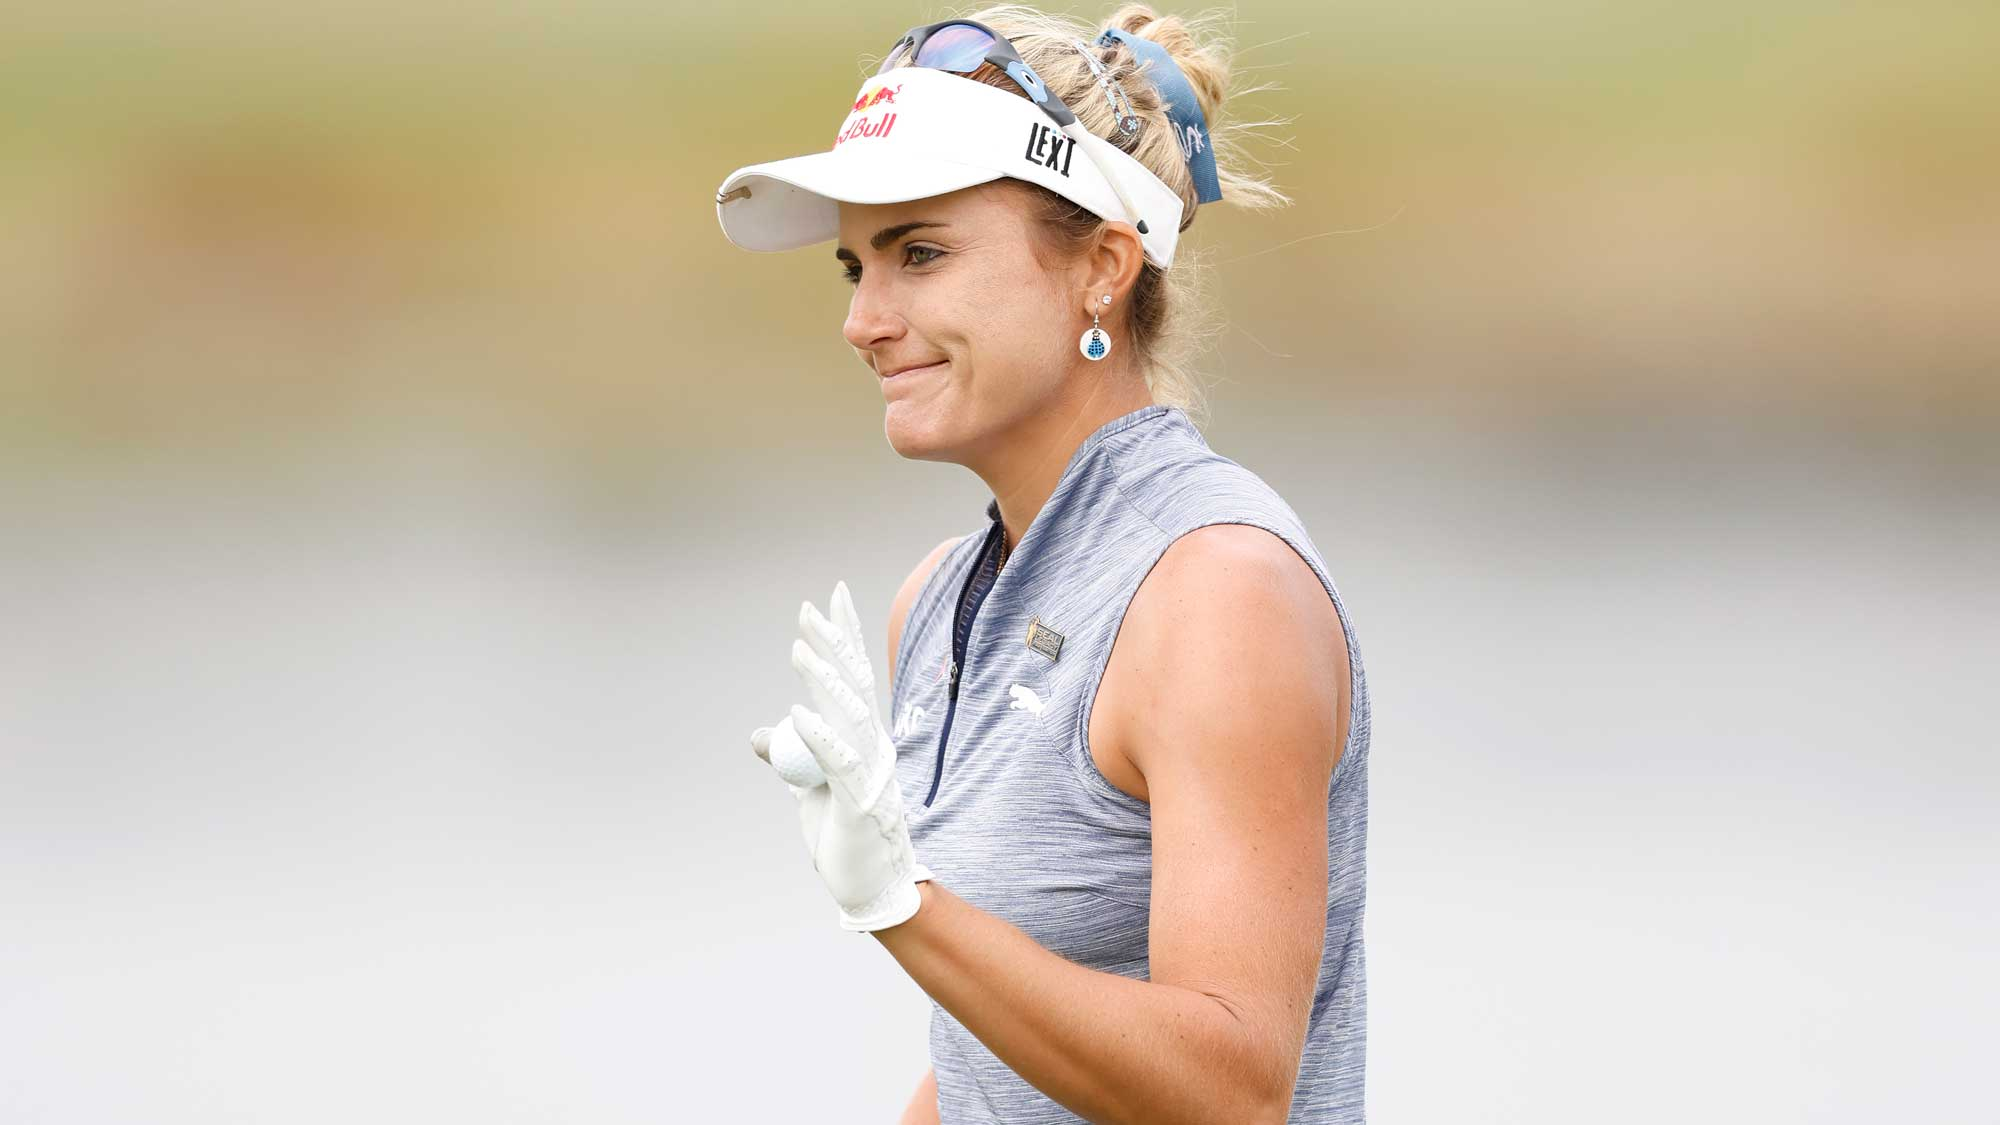 Lexi Thompson of the United States reacts after making a birdie putt on the 18th green during the first round of the CME Group Tour Championship